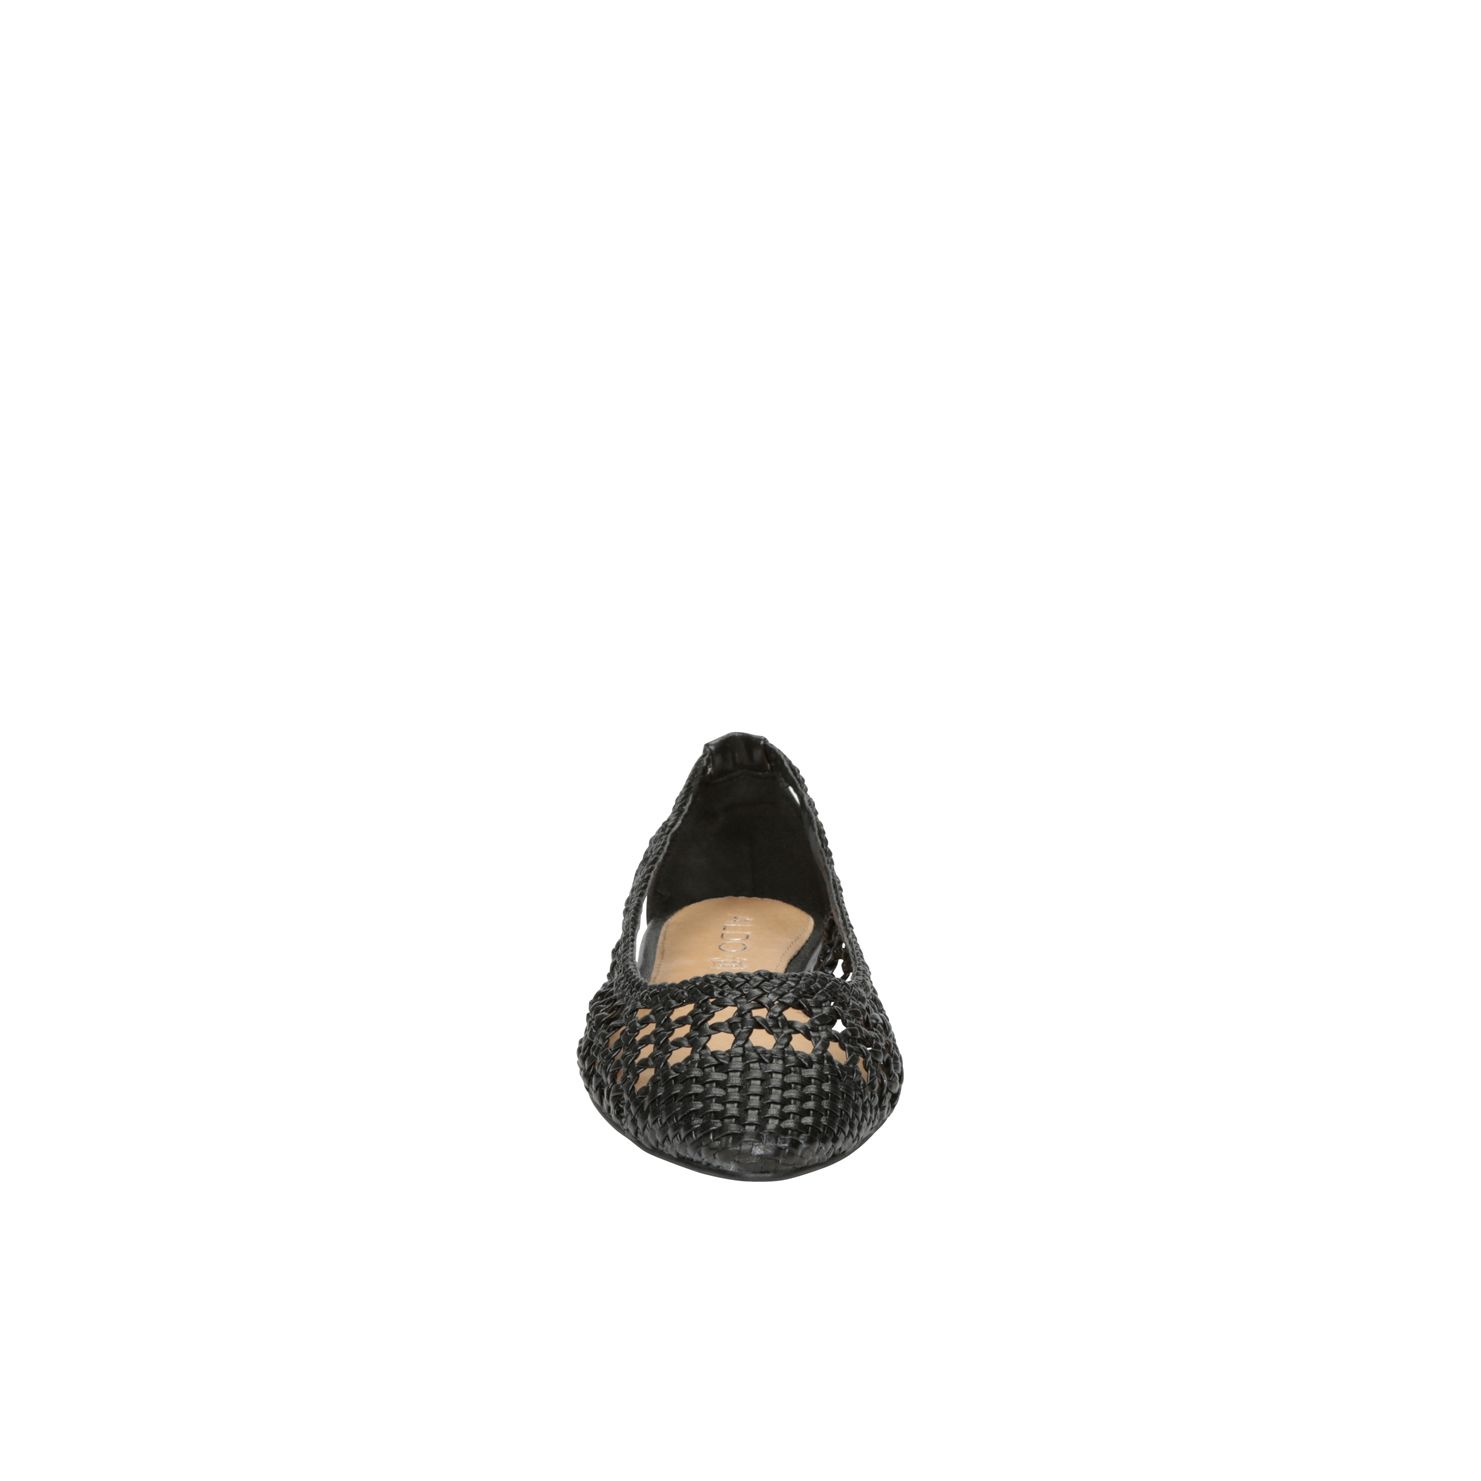 Cruikshank mesh ballerina shoes